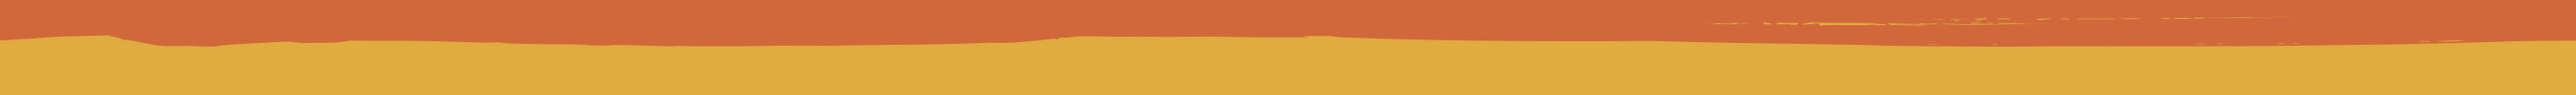 Beyond - Rough Divider Orange to Yellow